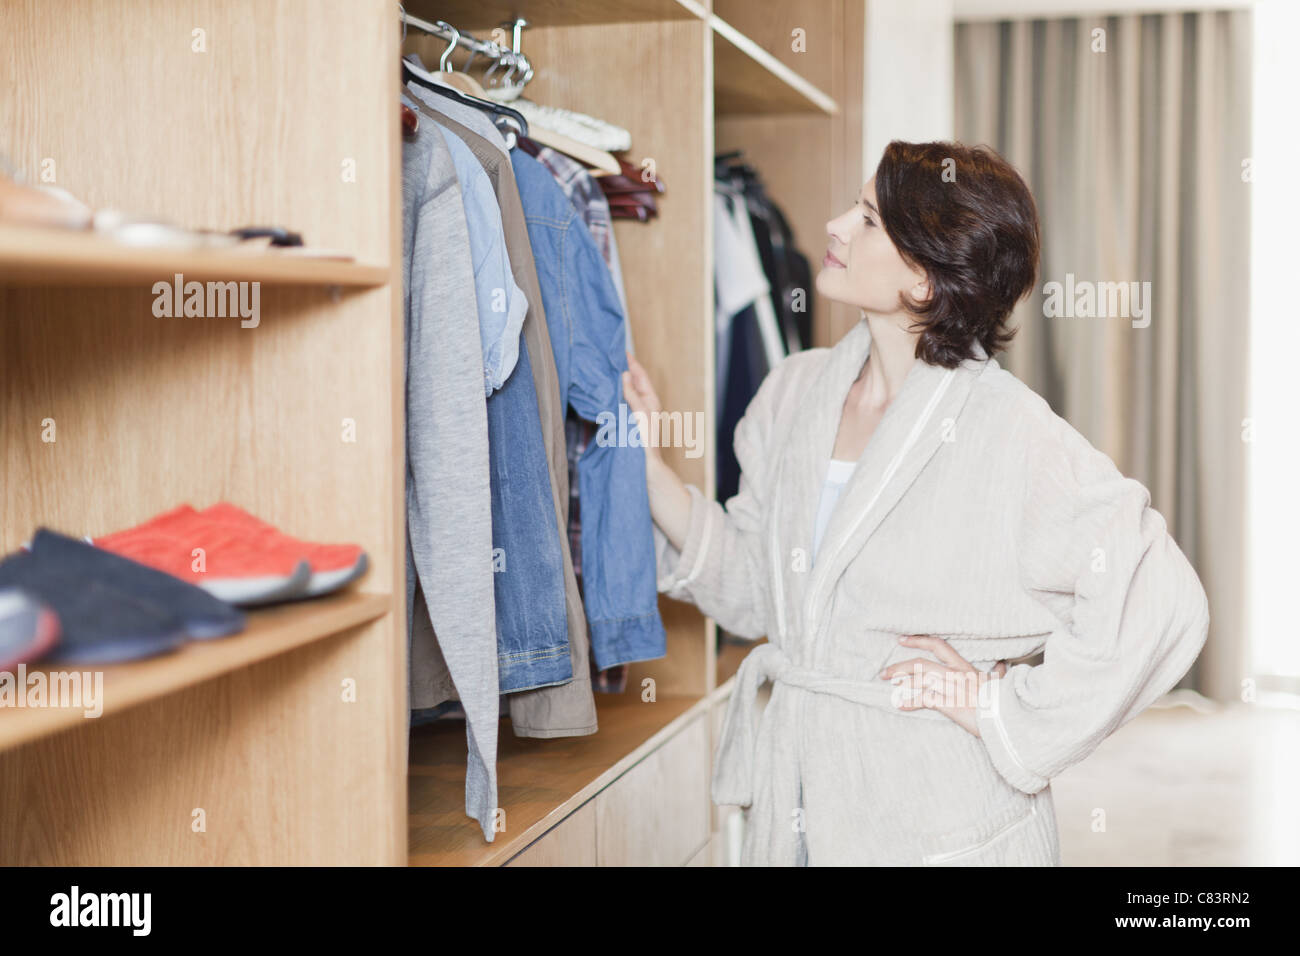 Woman picking clothes out of closet - Stock Image